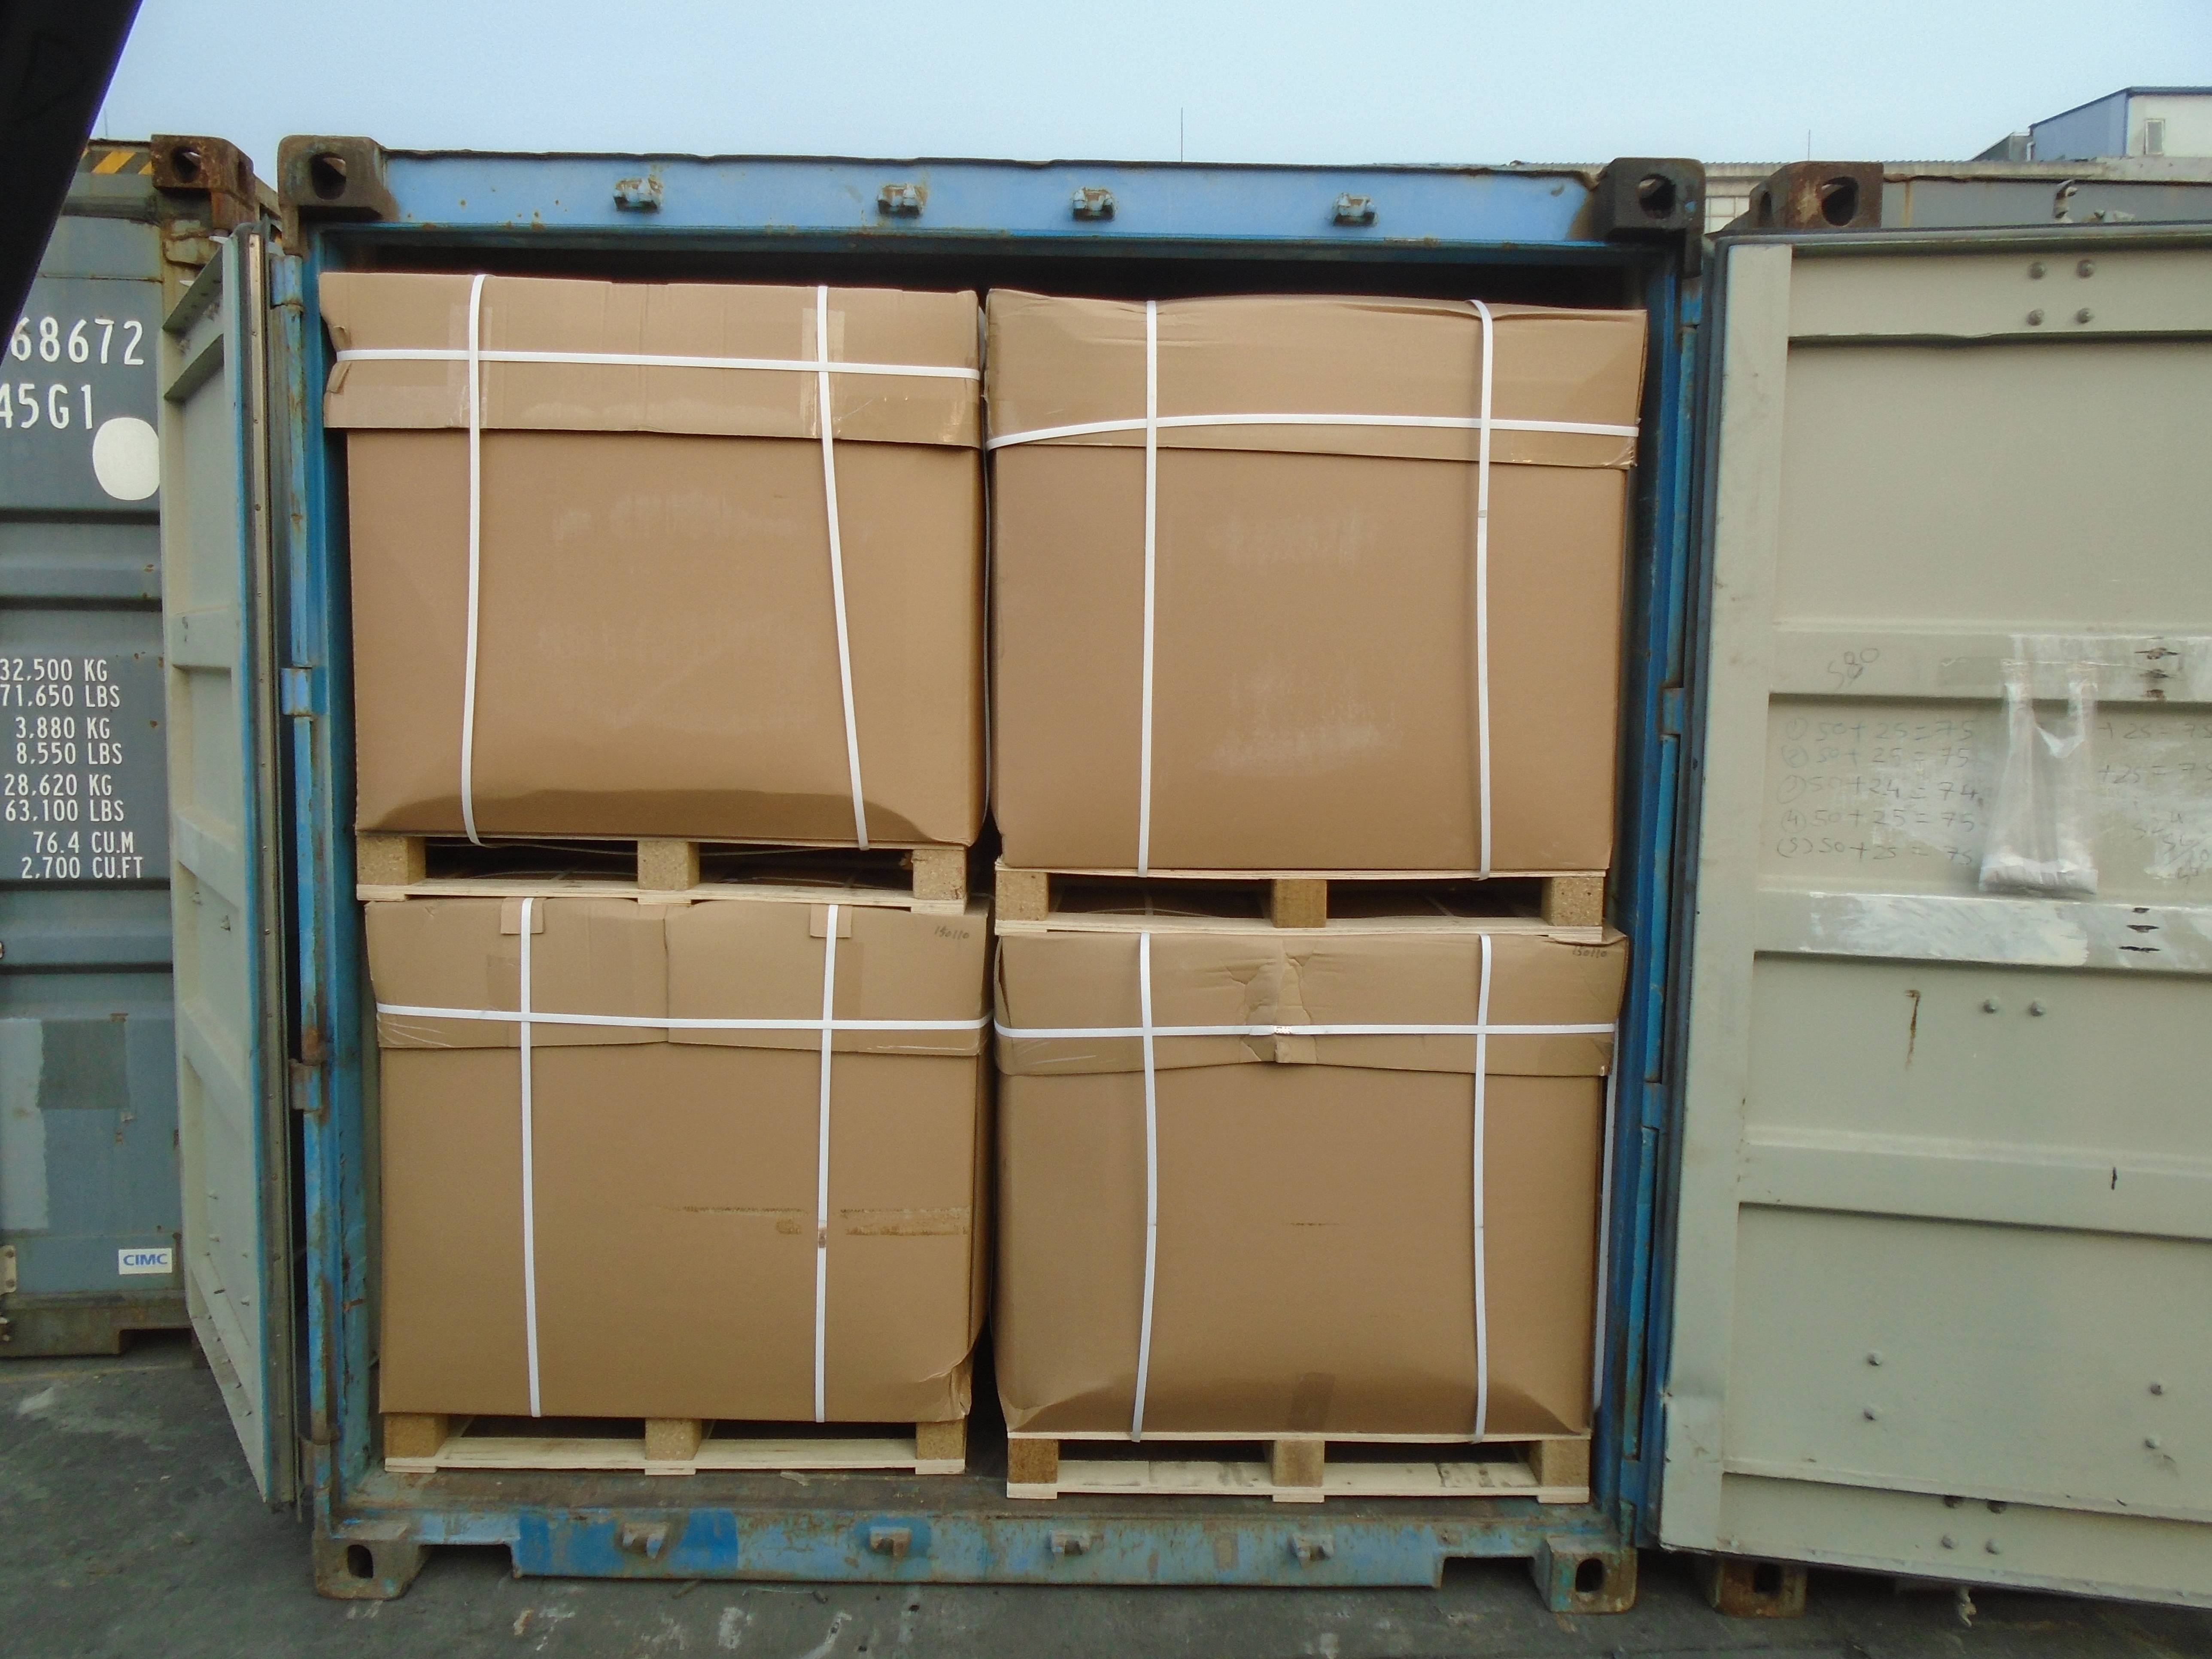 2 container of antioxidant CAPOX CPL is shipped